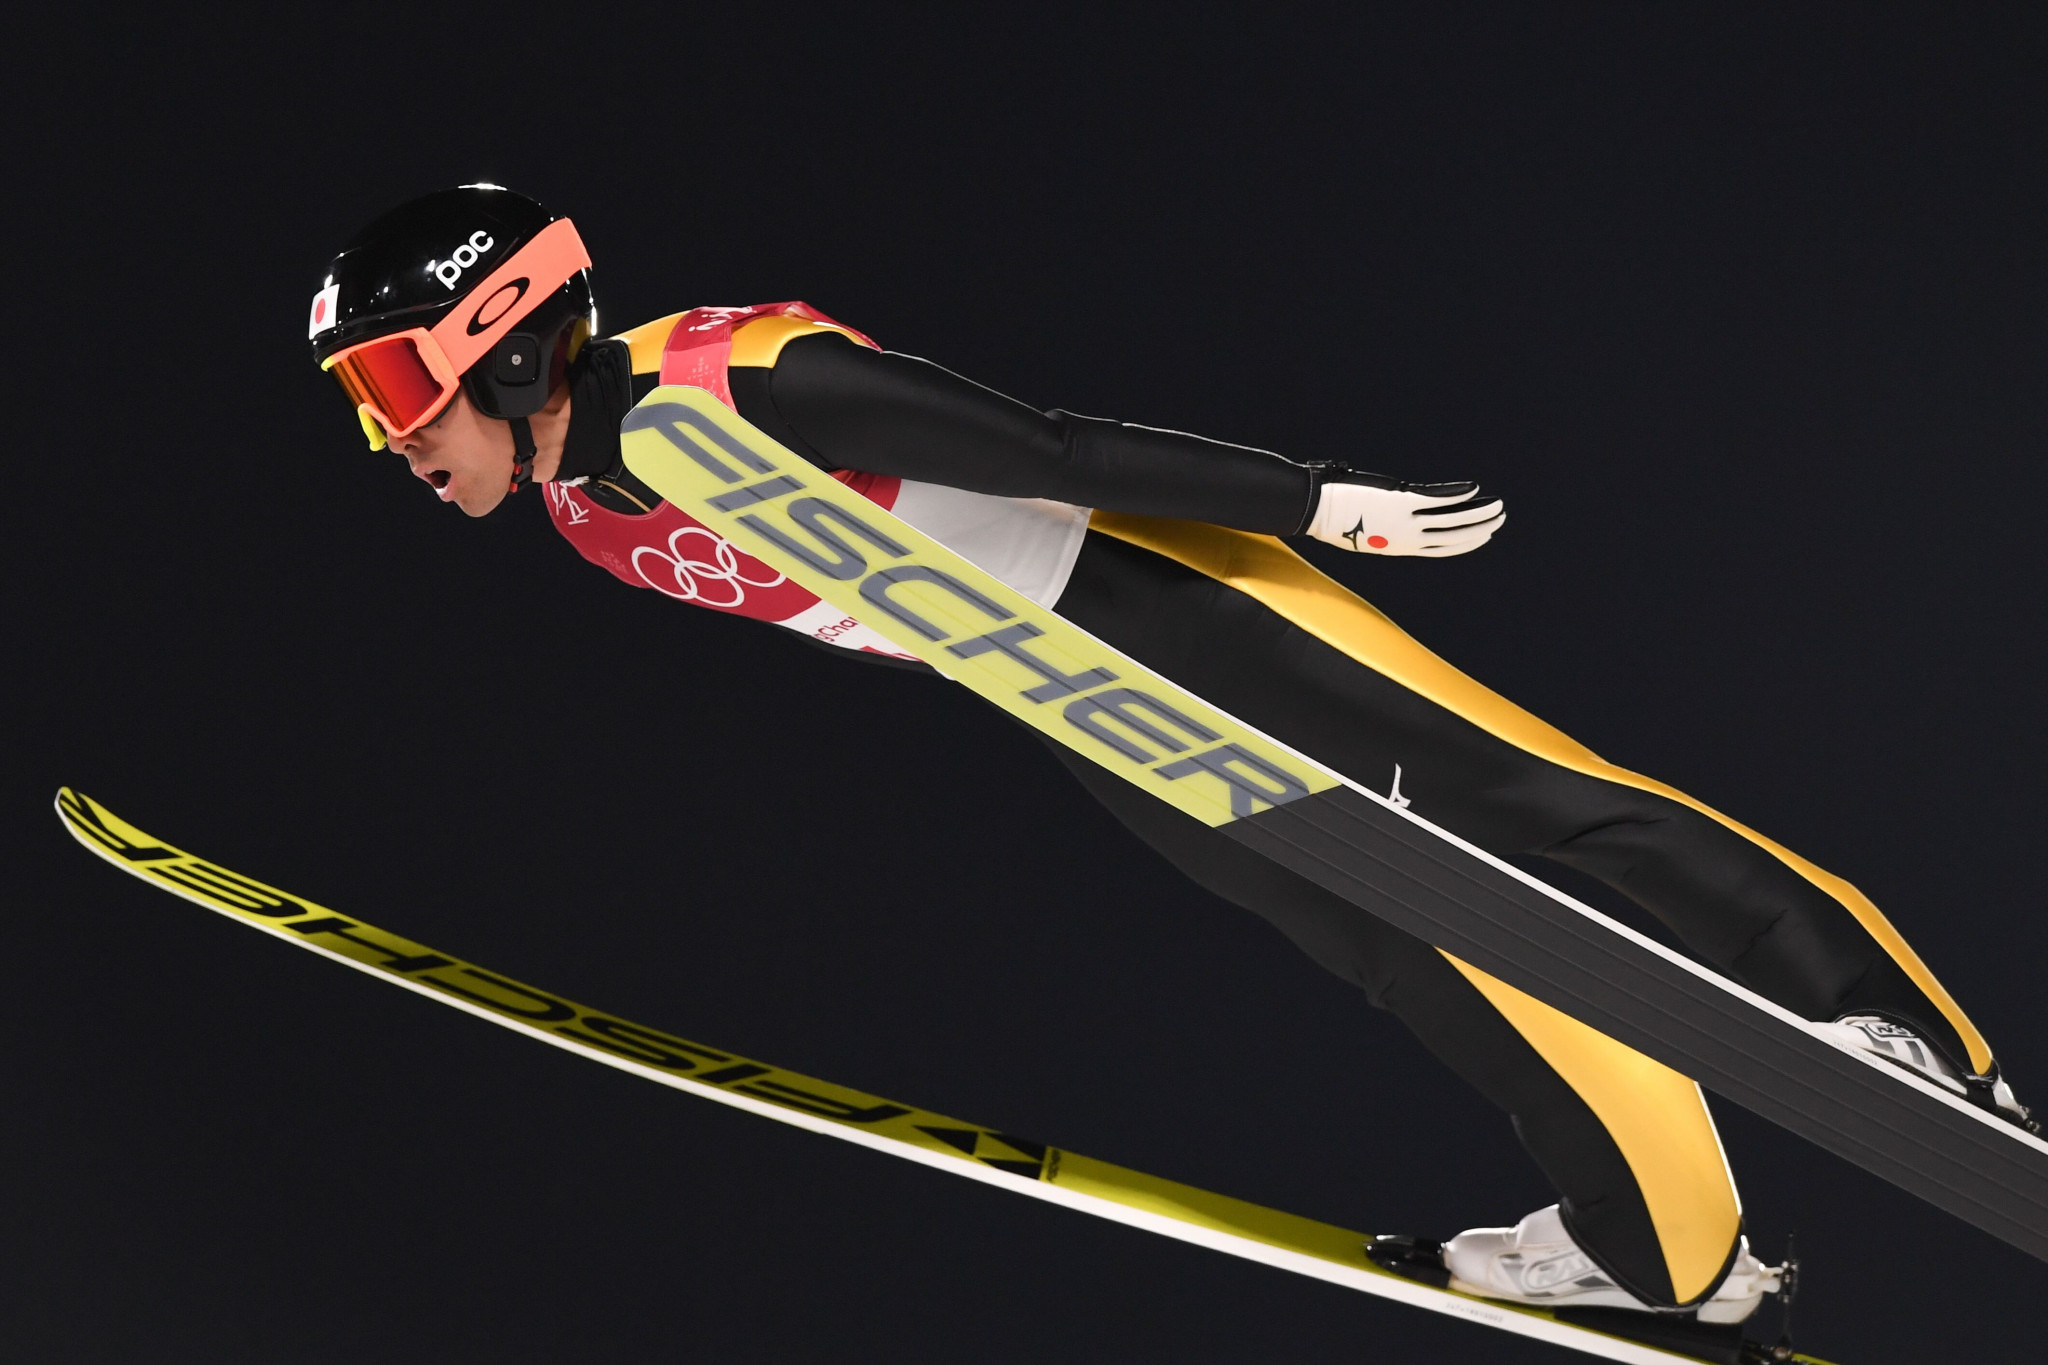 Japan's Akito Watabe won the ski jumping segment, but finished fifth overall ©Getty Images